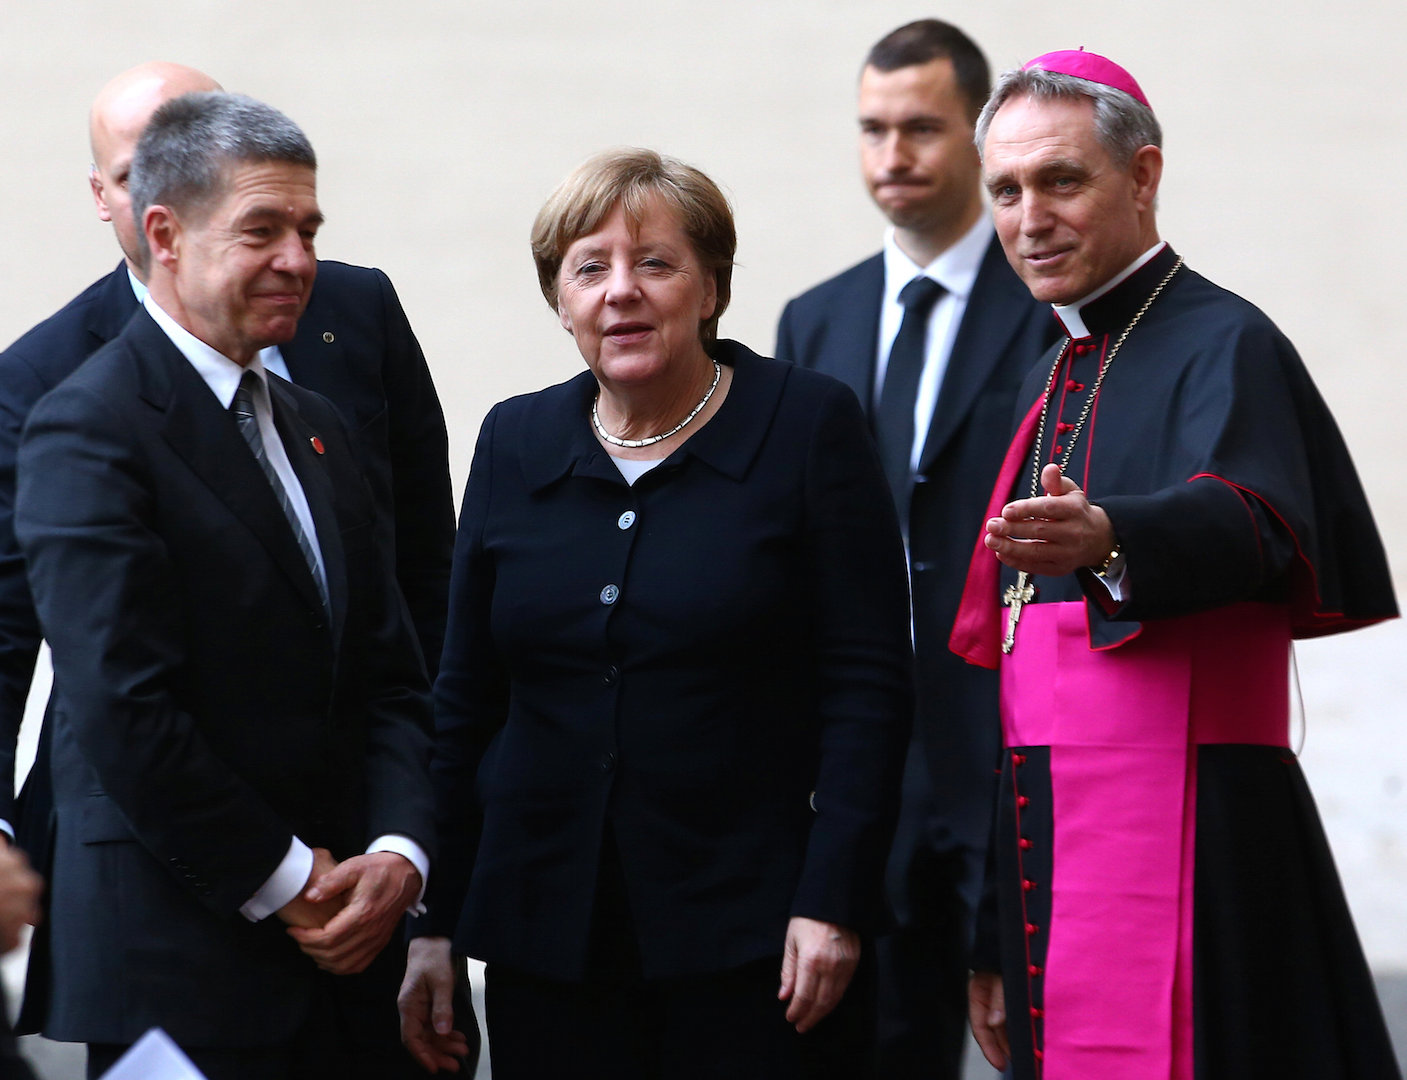 Archbishop Georg Ganswein greets German Chancellor Angela Merkel and her husband, Joachim Sauer, as they arrive March 24 for the European Union summit with Pope Francis at the Vatican (CNS photo/Alessandro Bianchi, Reuters).